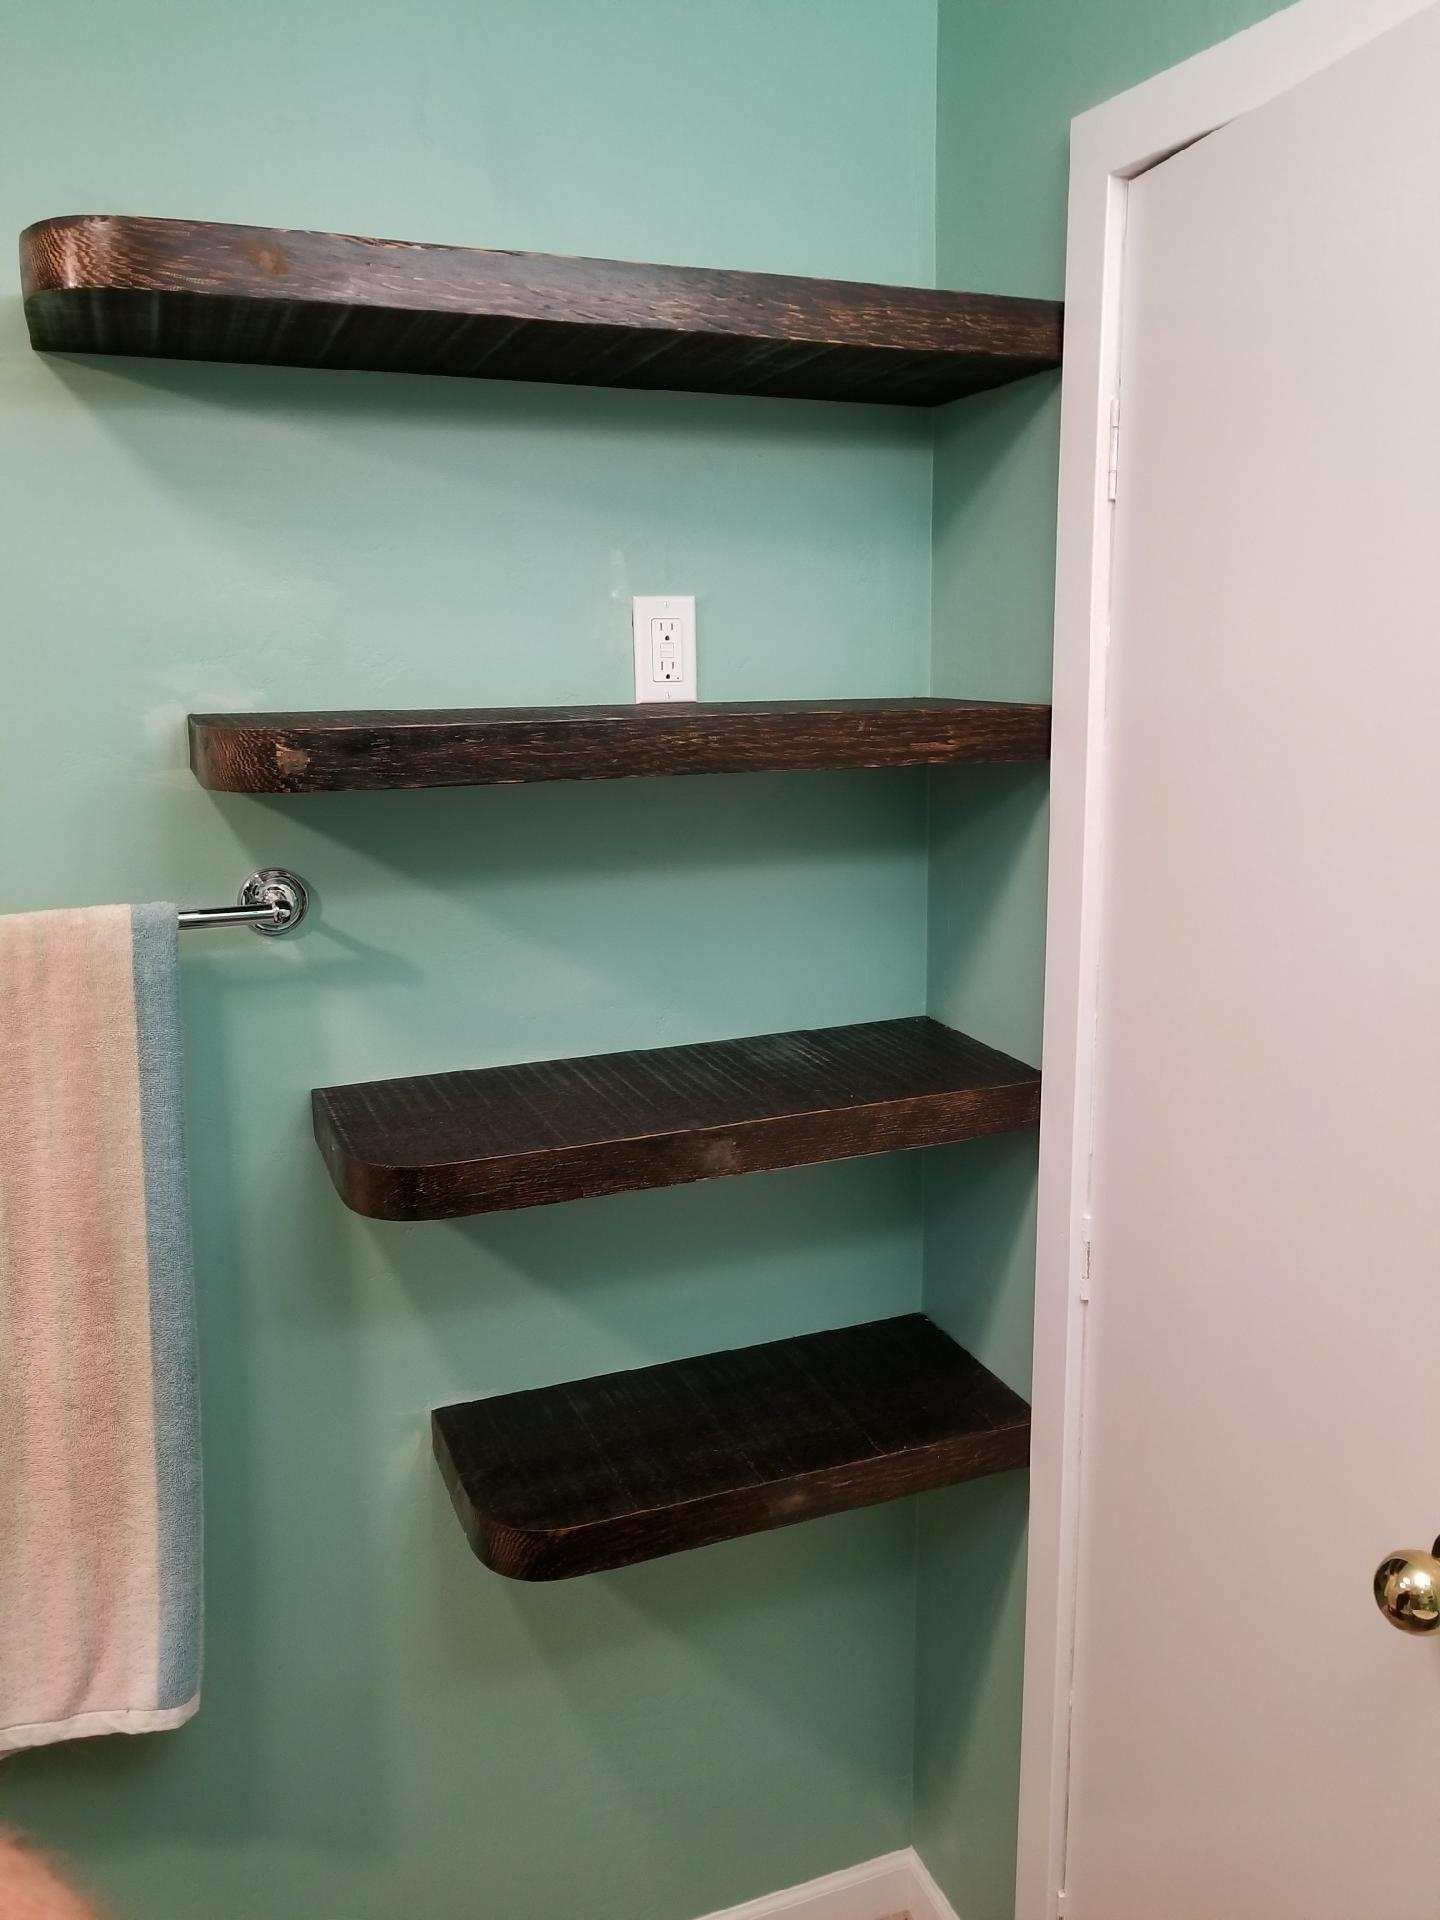 Resawn free floating fir shelves gives this bathroom a masculine ...